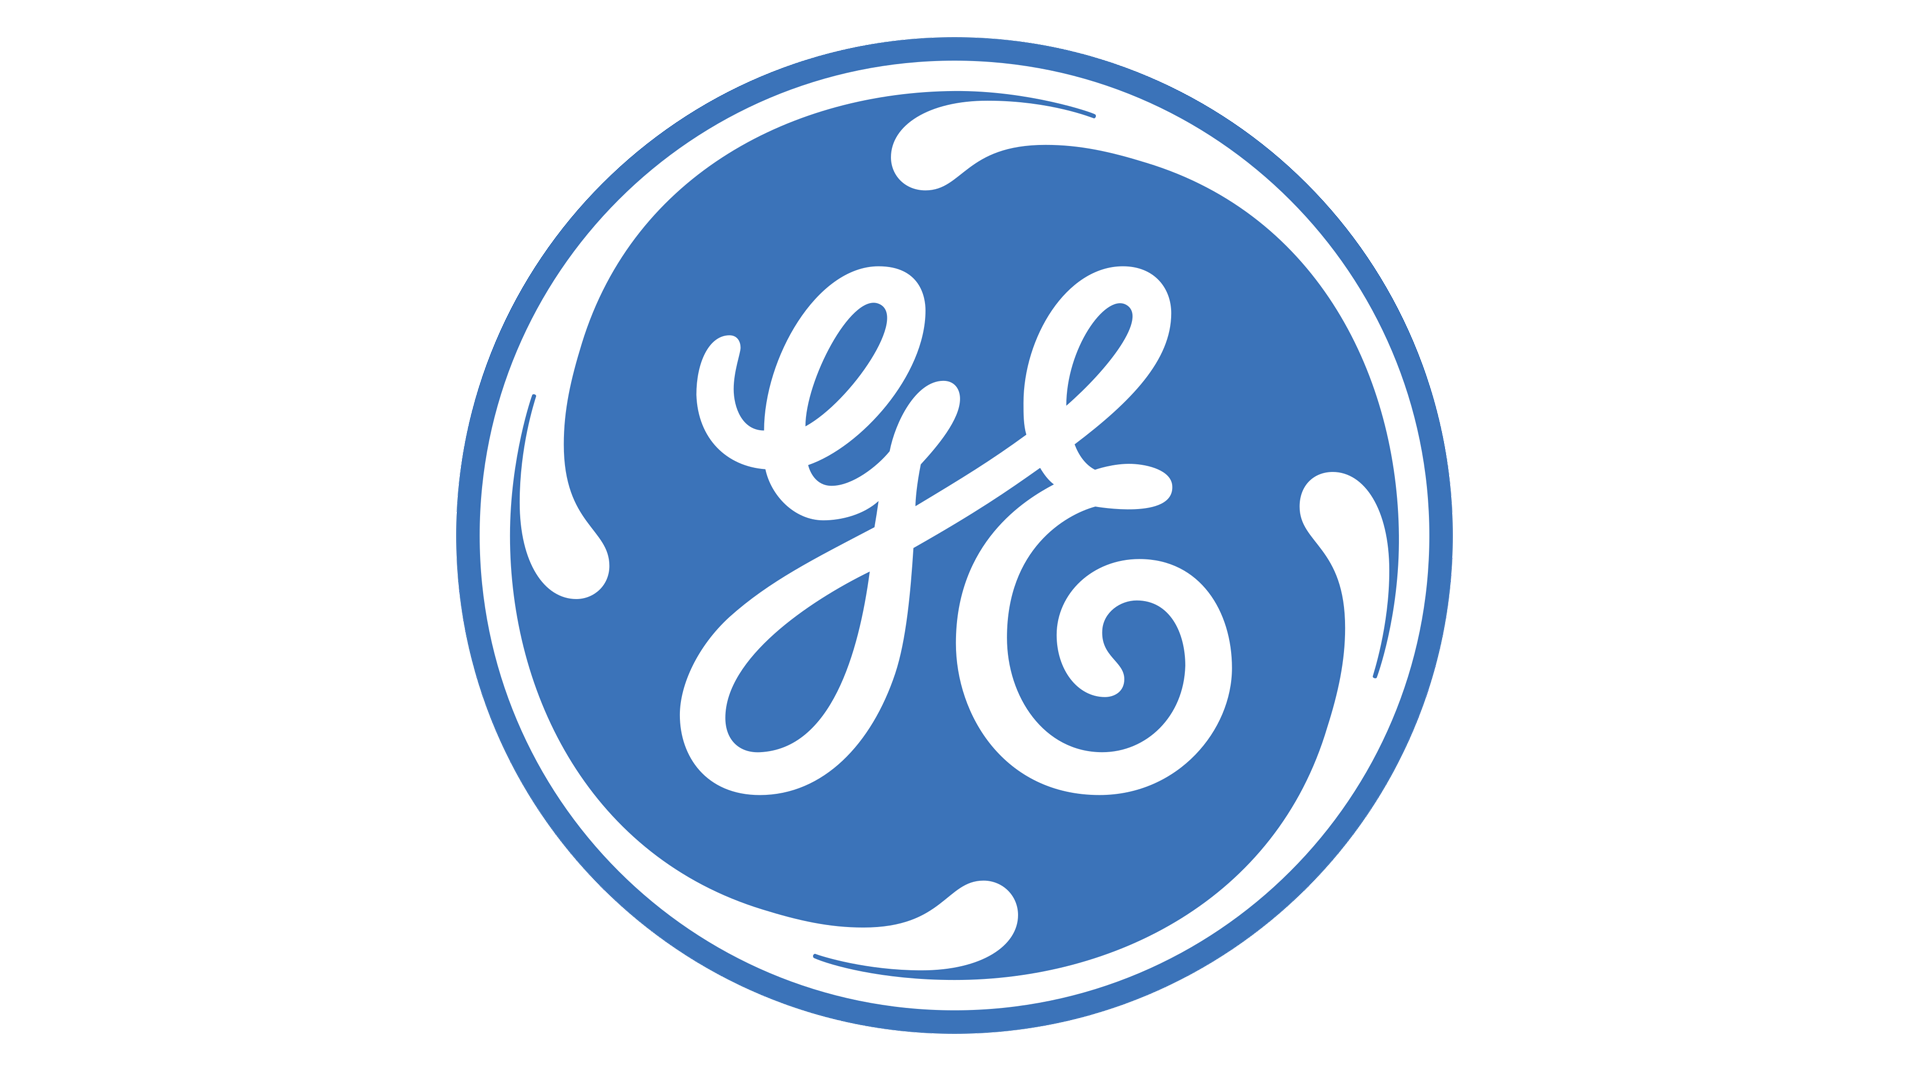 GE Logo, GE Symbol, Meaning, History and Evolution